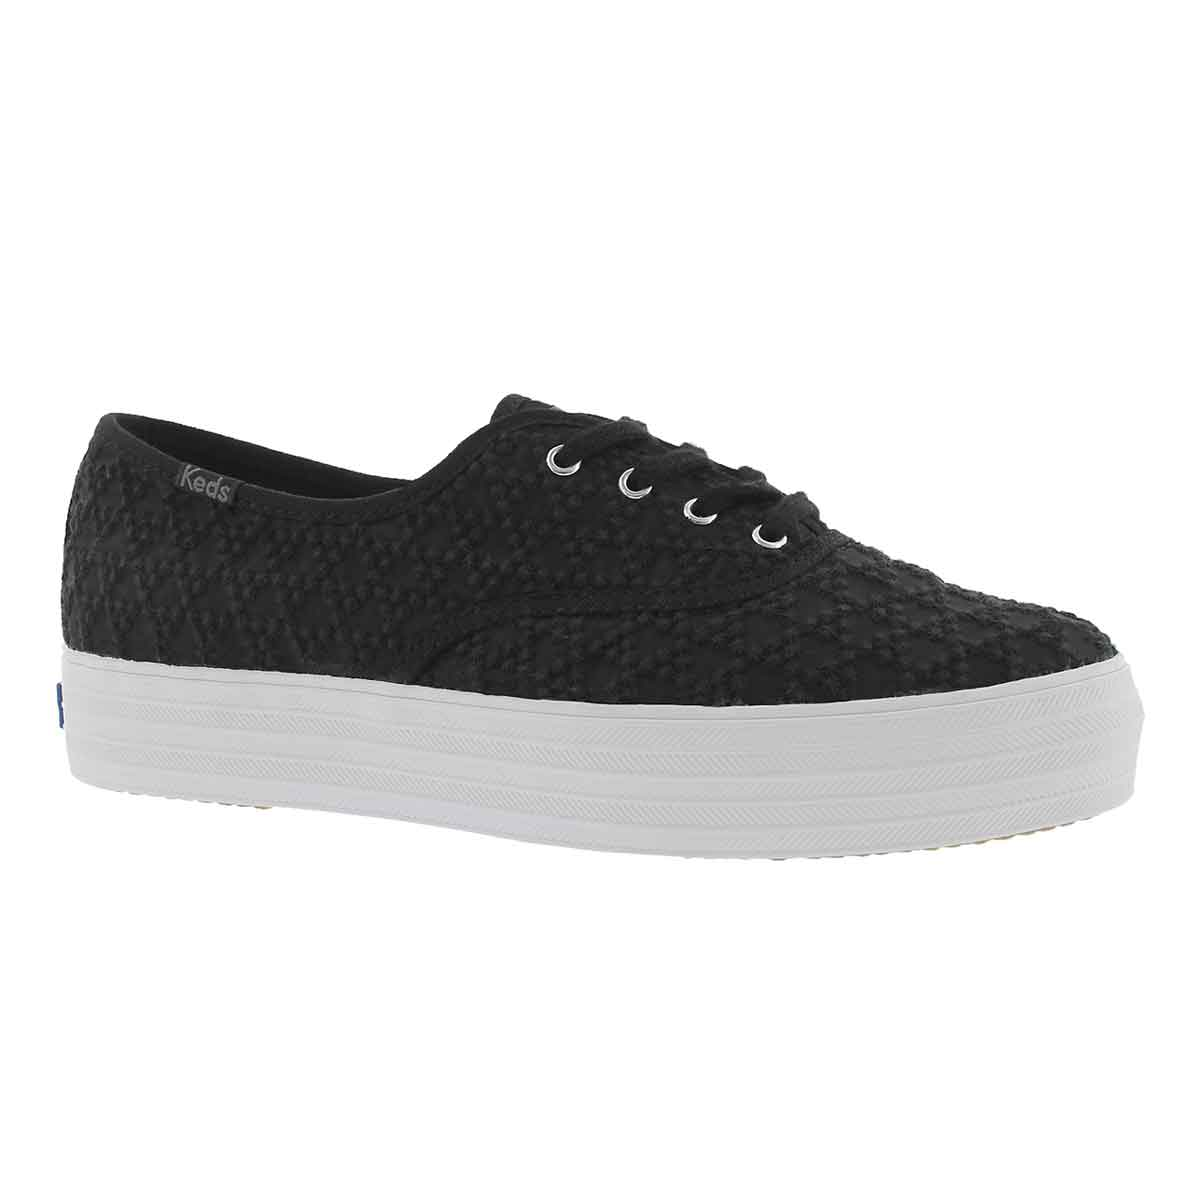 Women's TRIPLE EMBROIDERED TRIANGLE sneakers